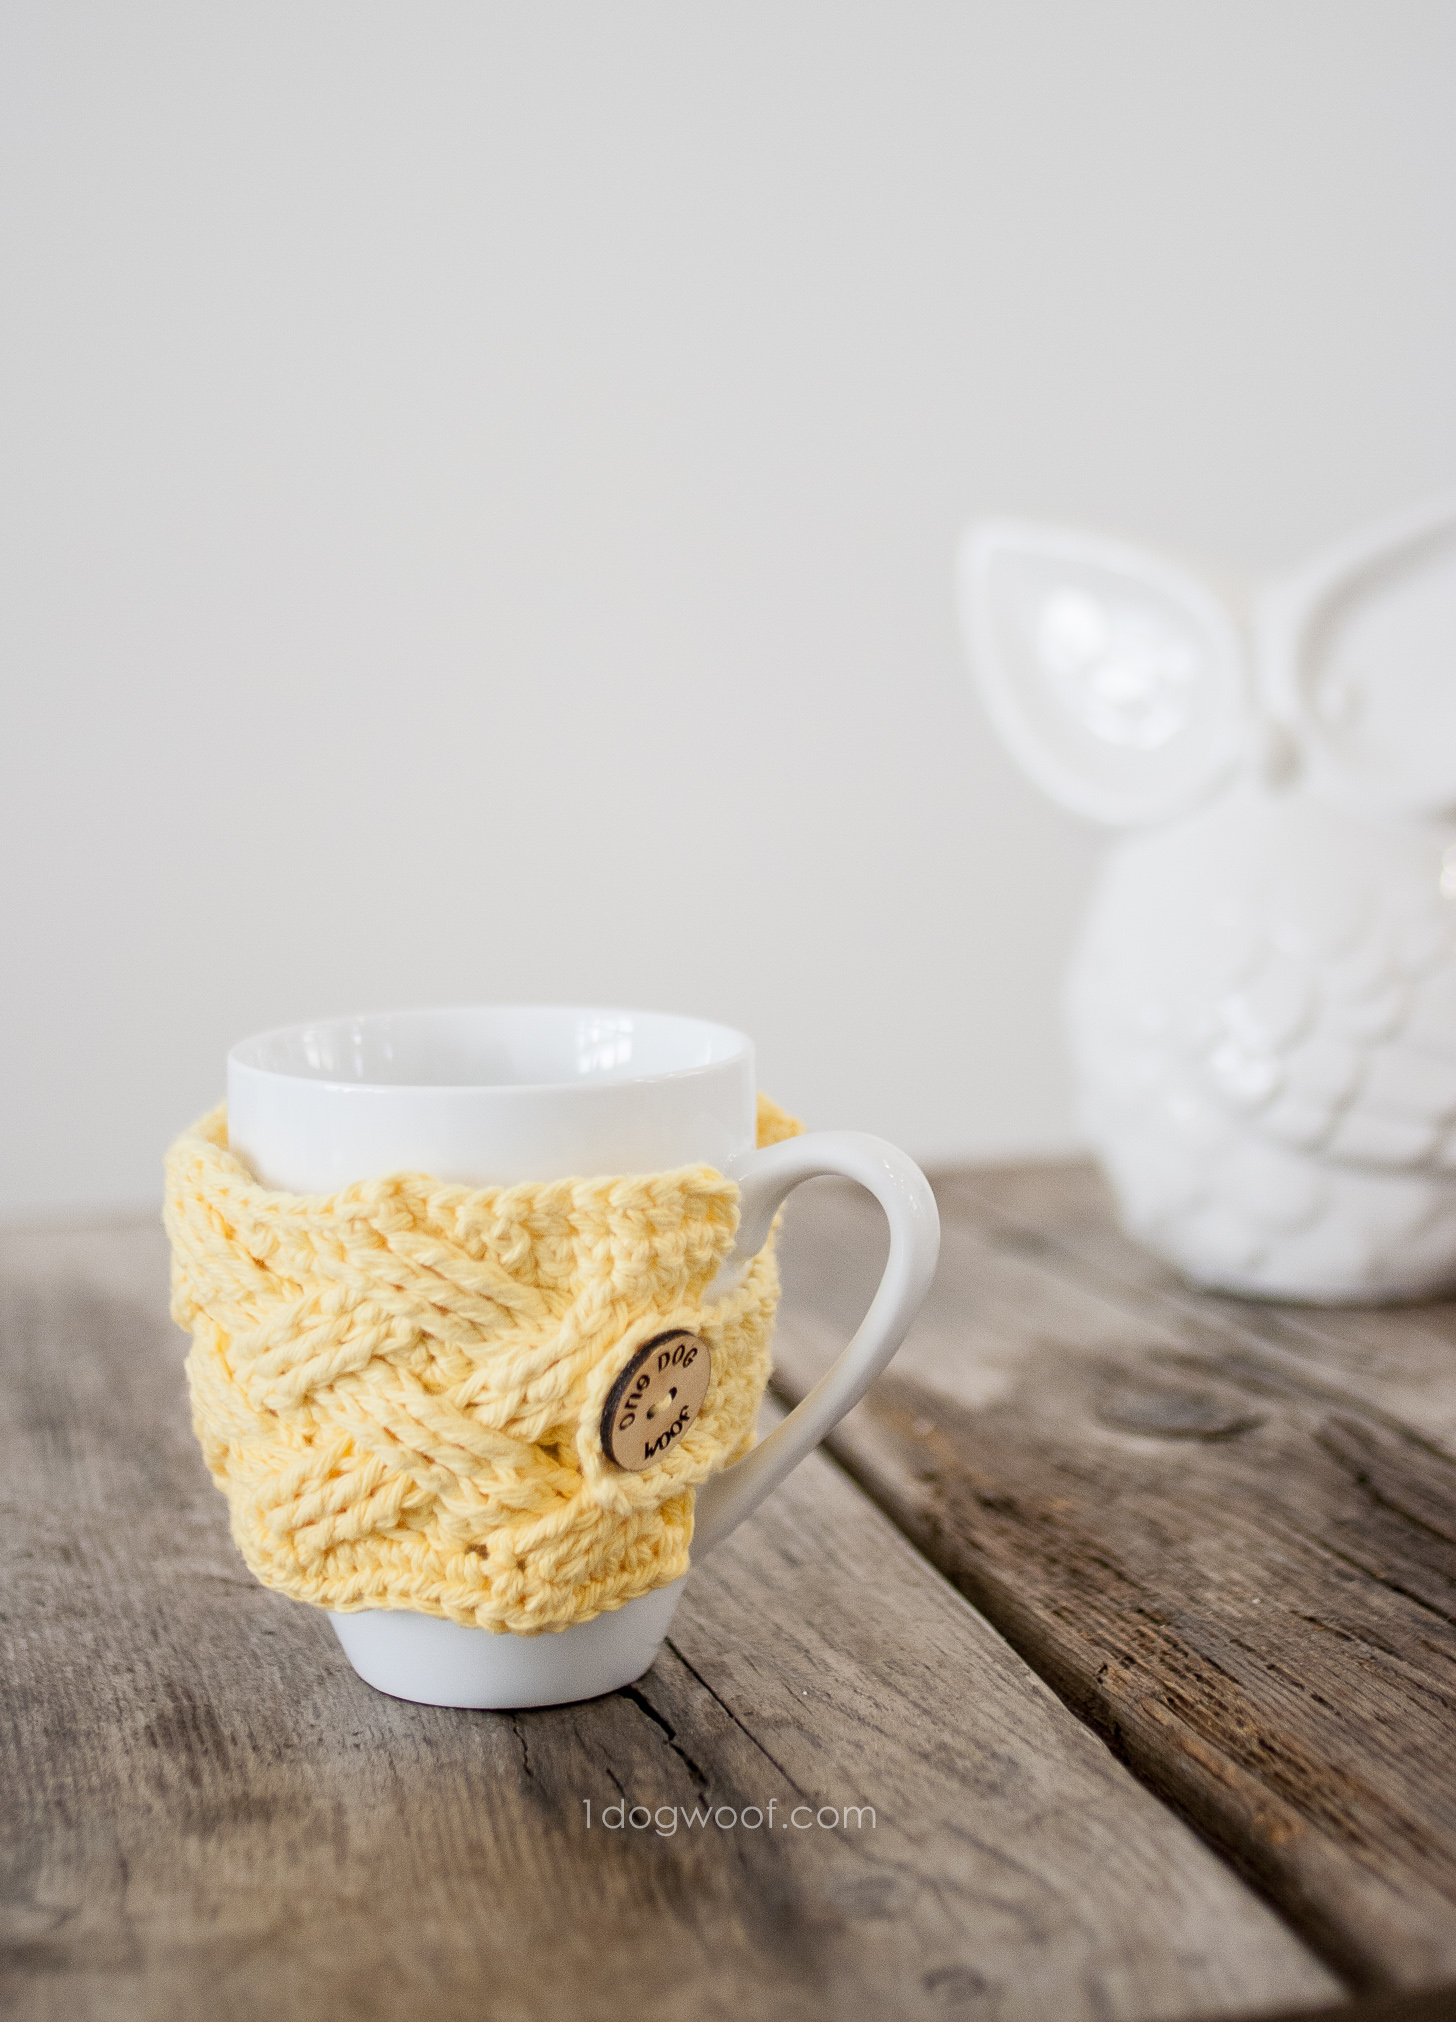 Woven Cables Mug Cozy Crochet Pattern | www.1dogwoof.com